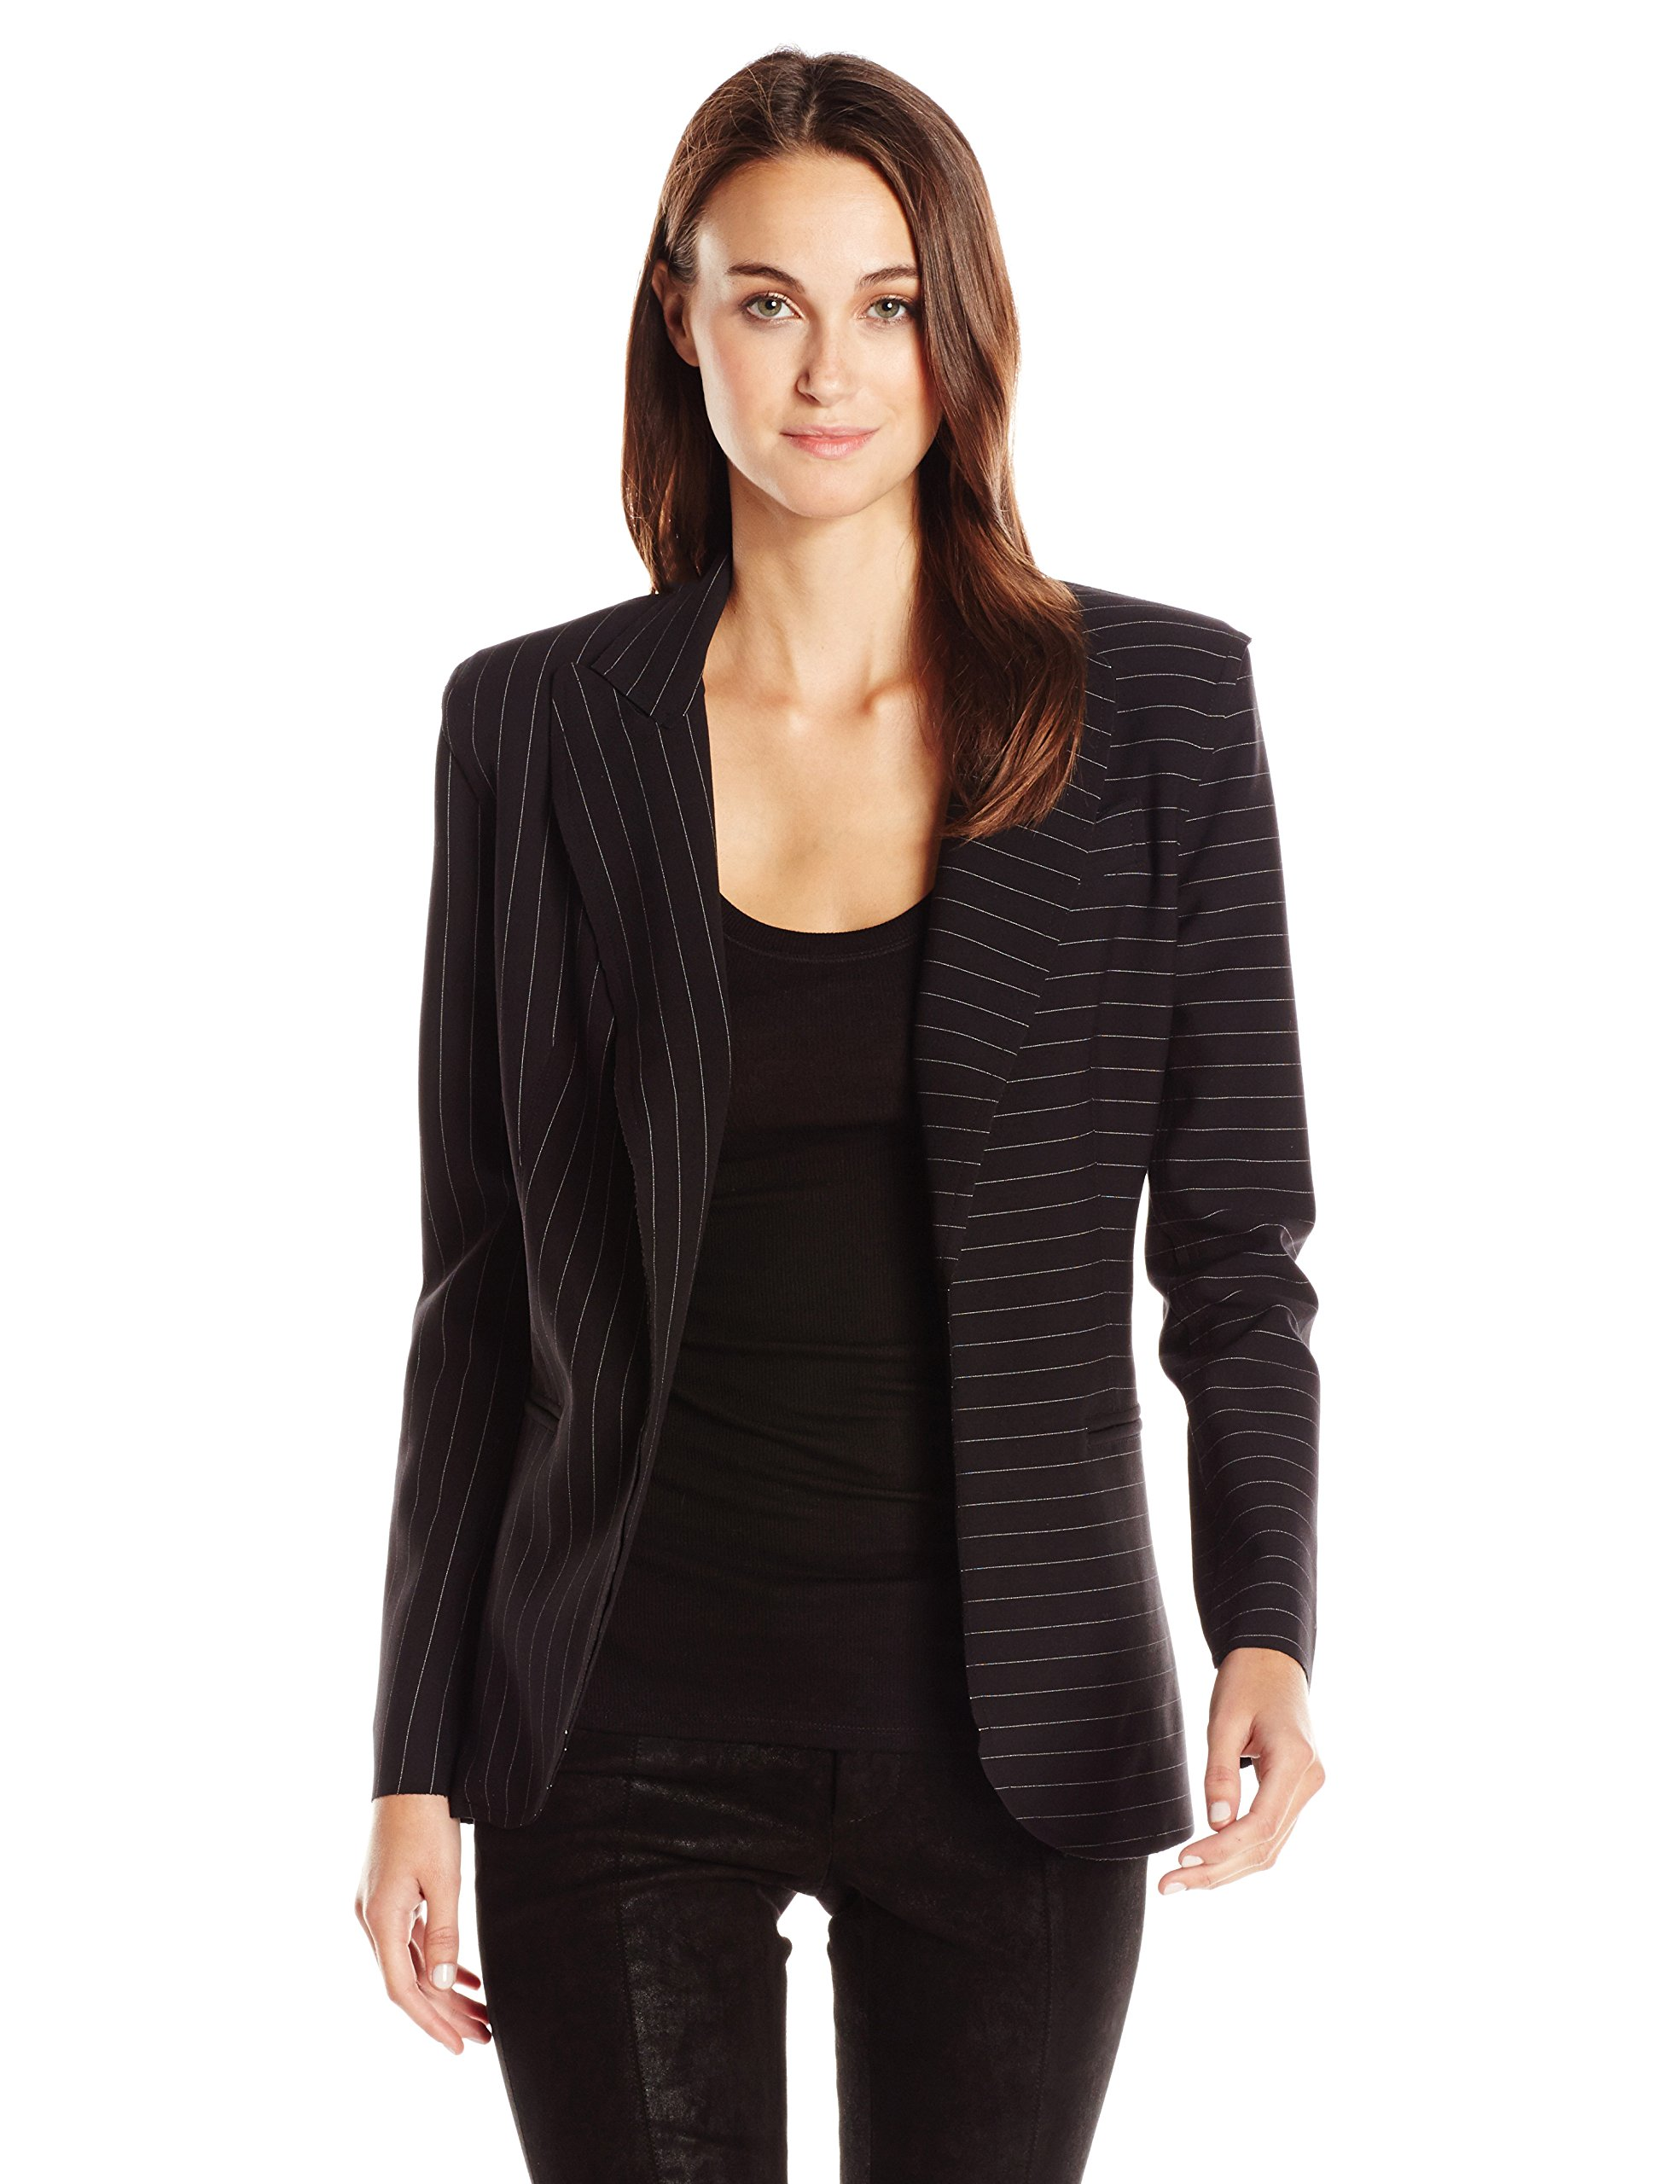 Norma Kamali Women's Single Breasted Jacket Bonded, Black Pinstripe, 10